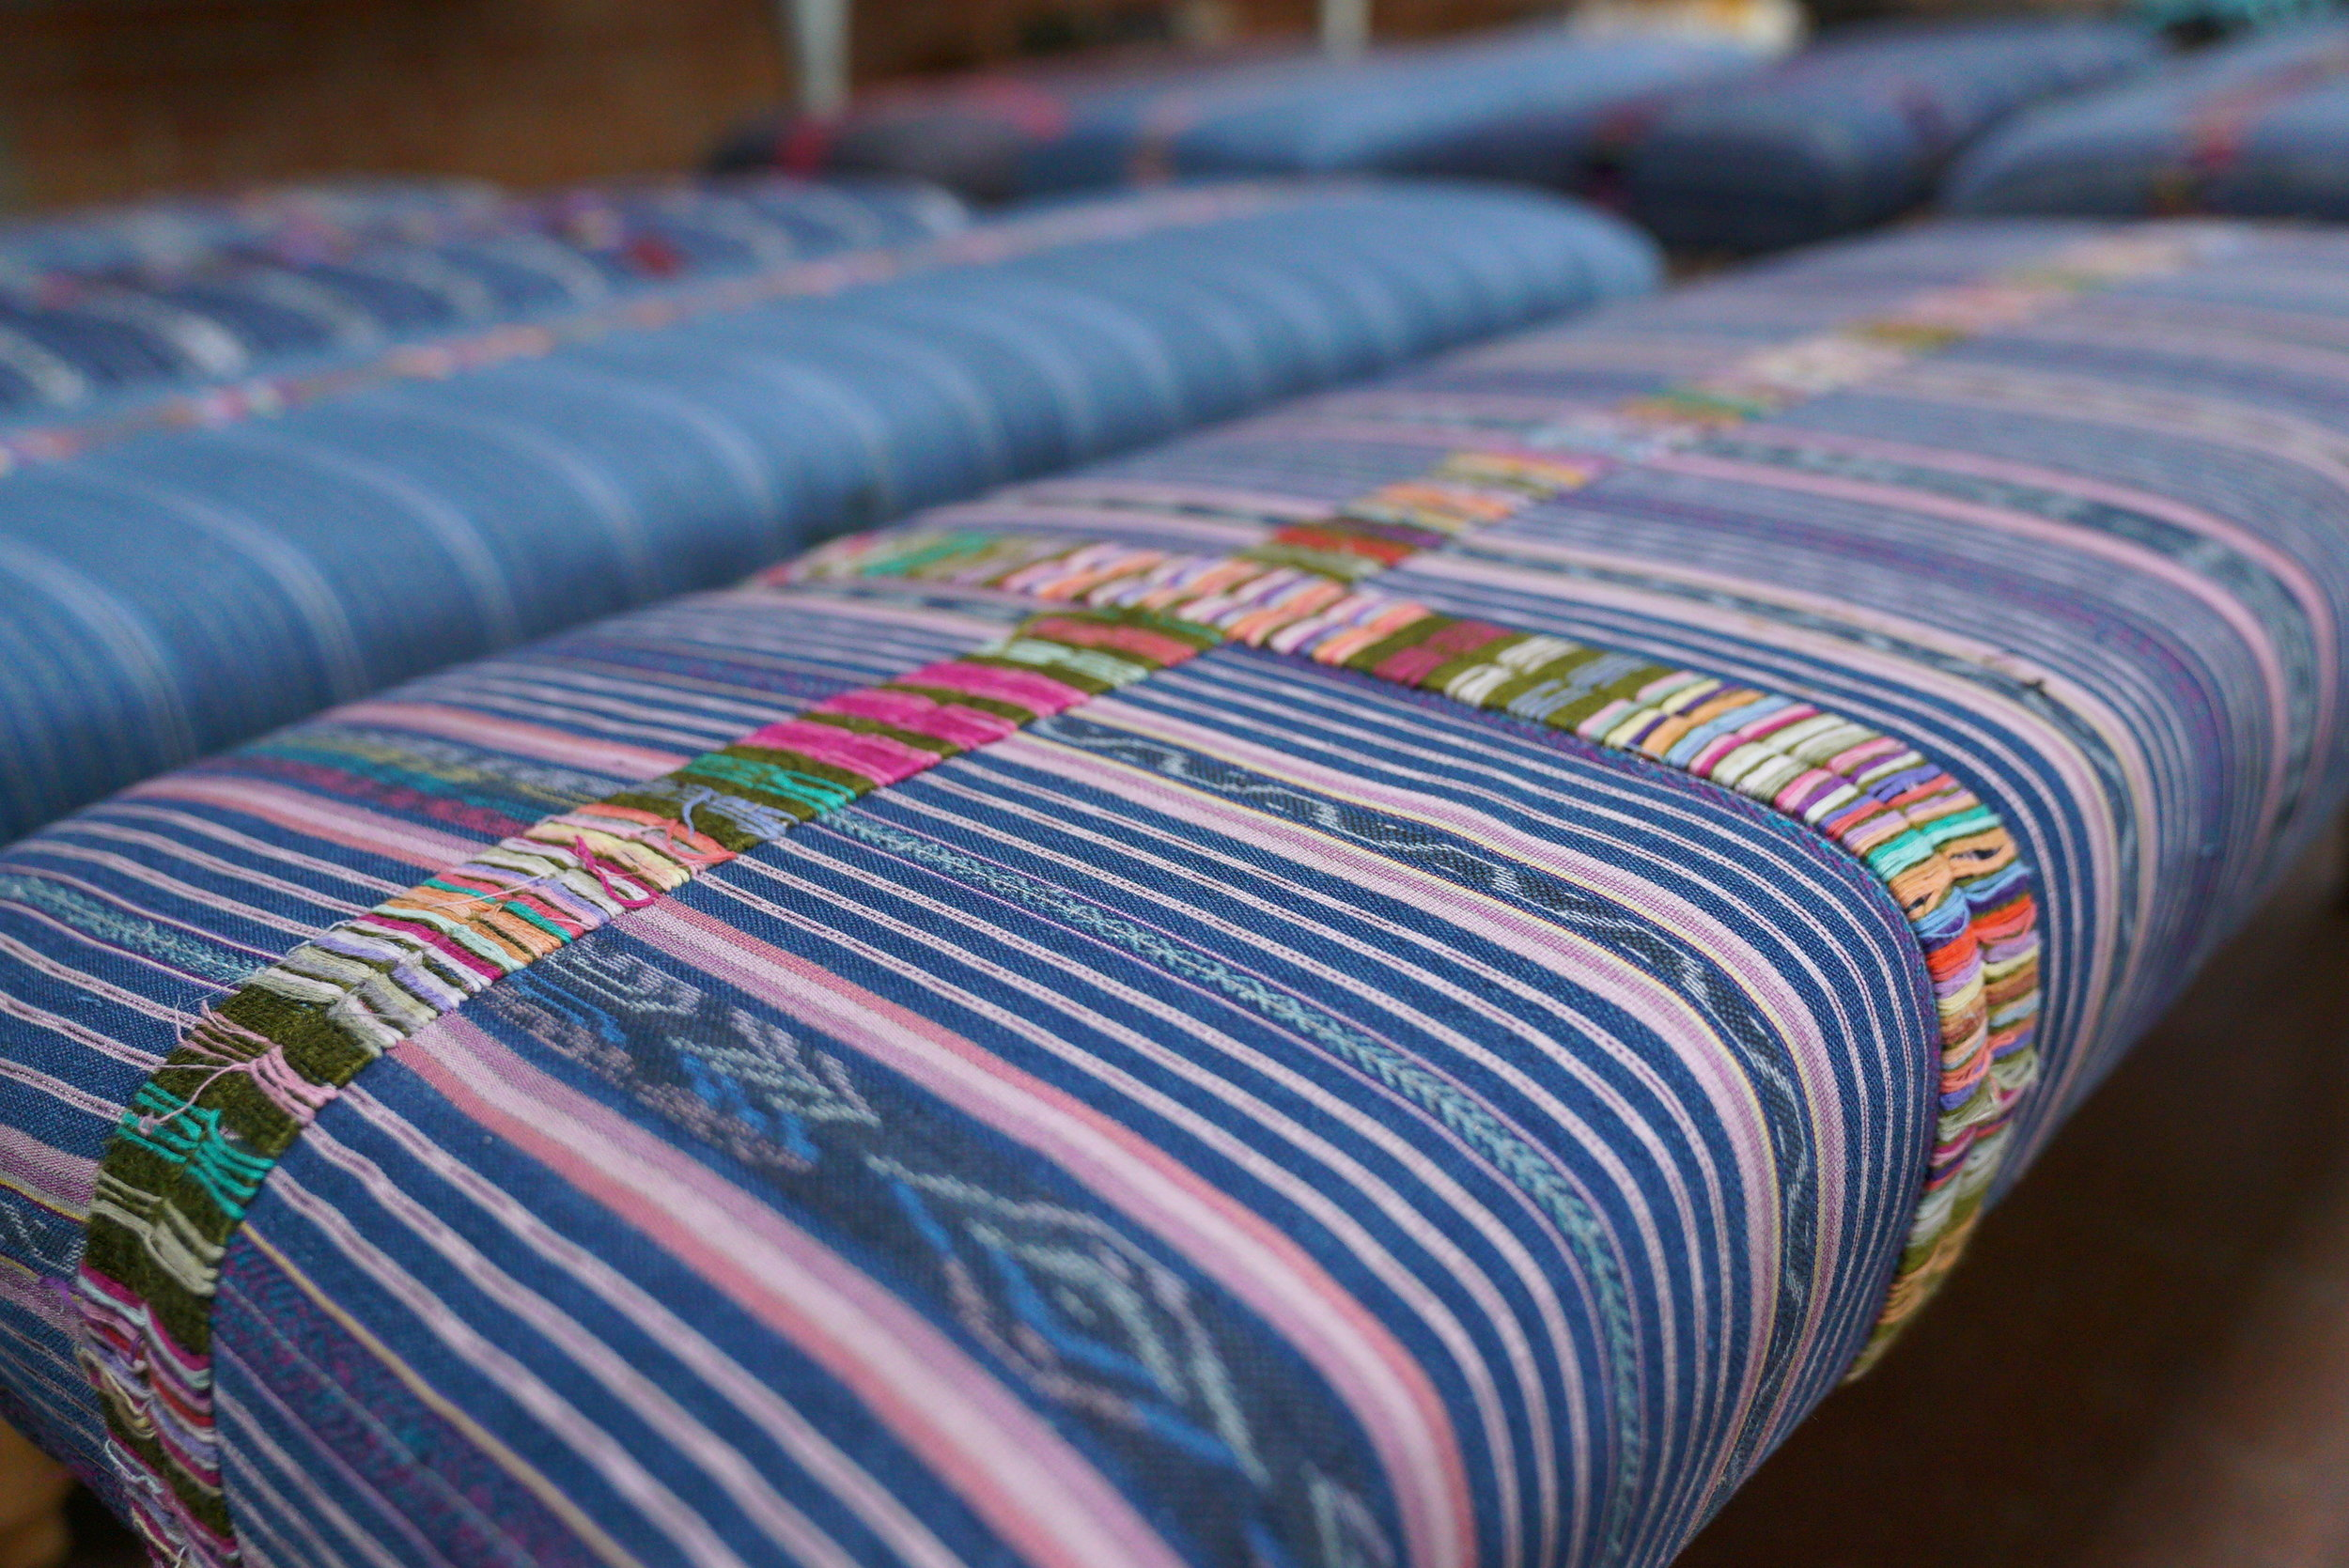 Upholstered Benches Closeup.JPG